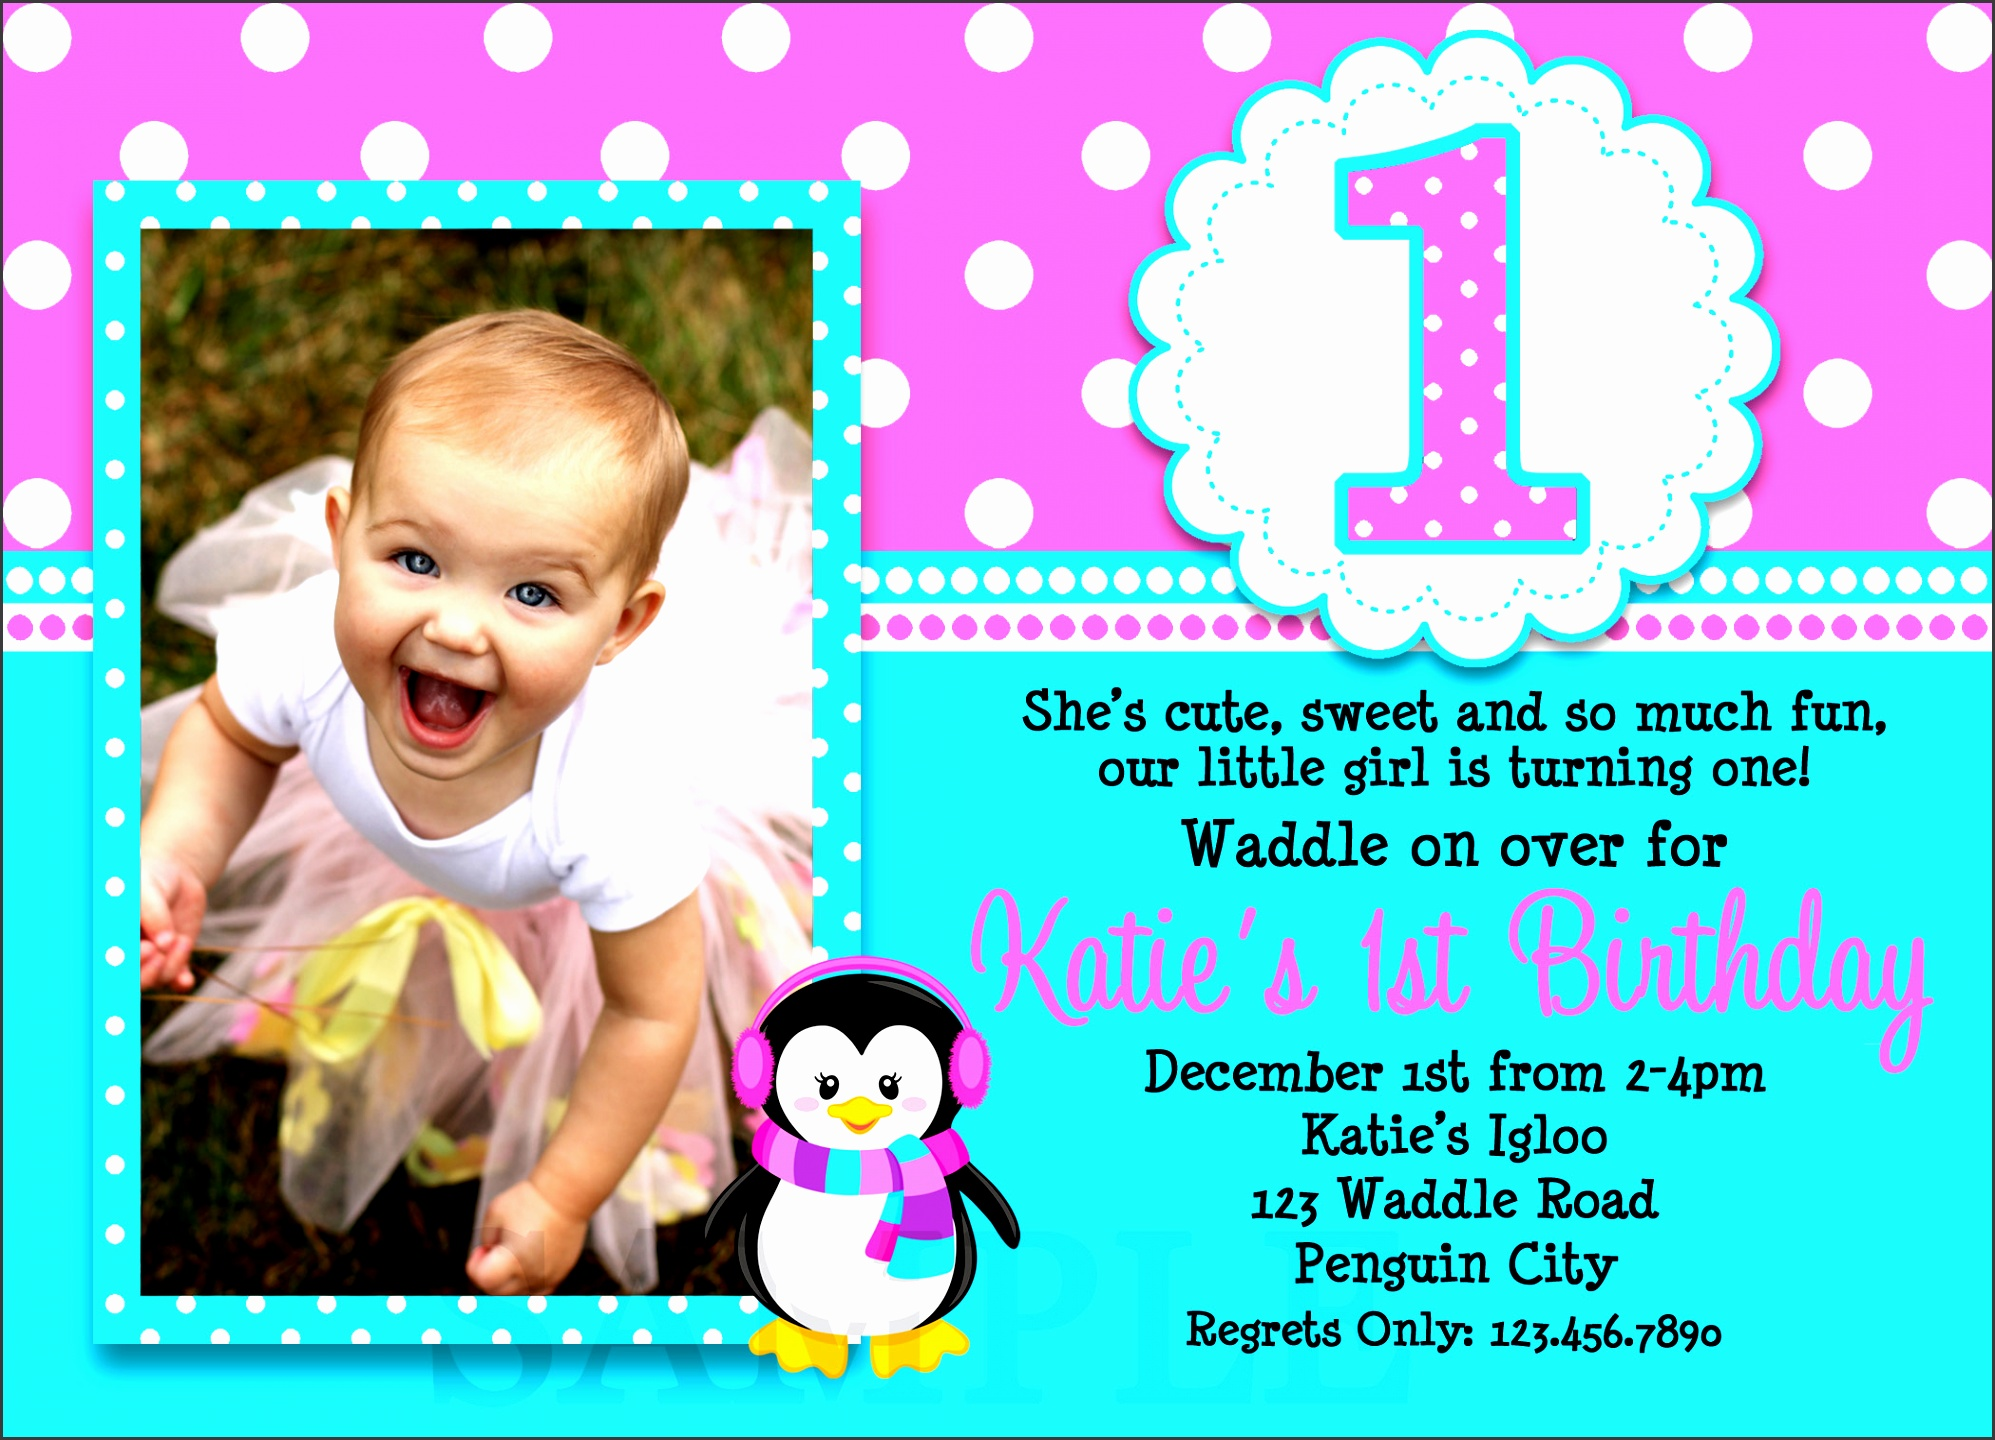 10 birthday party invitation template for baby girl 1st birthday invitations stopboris